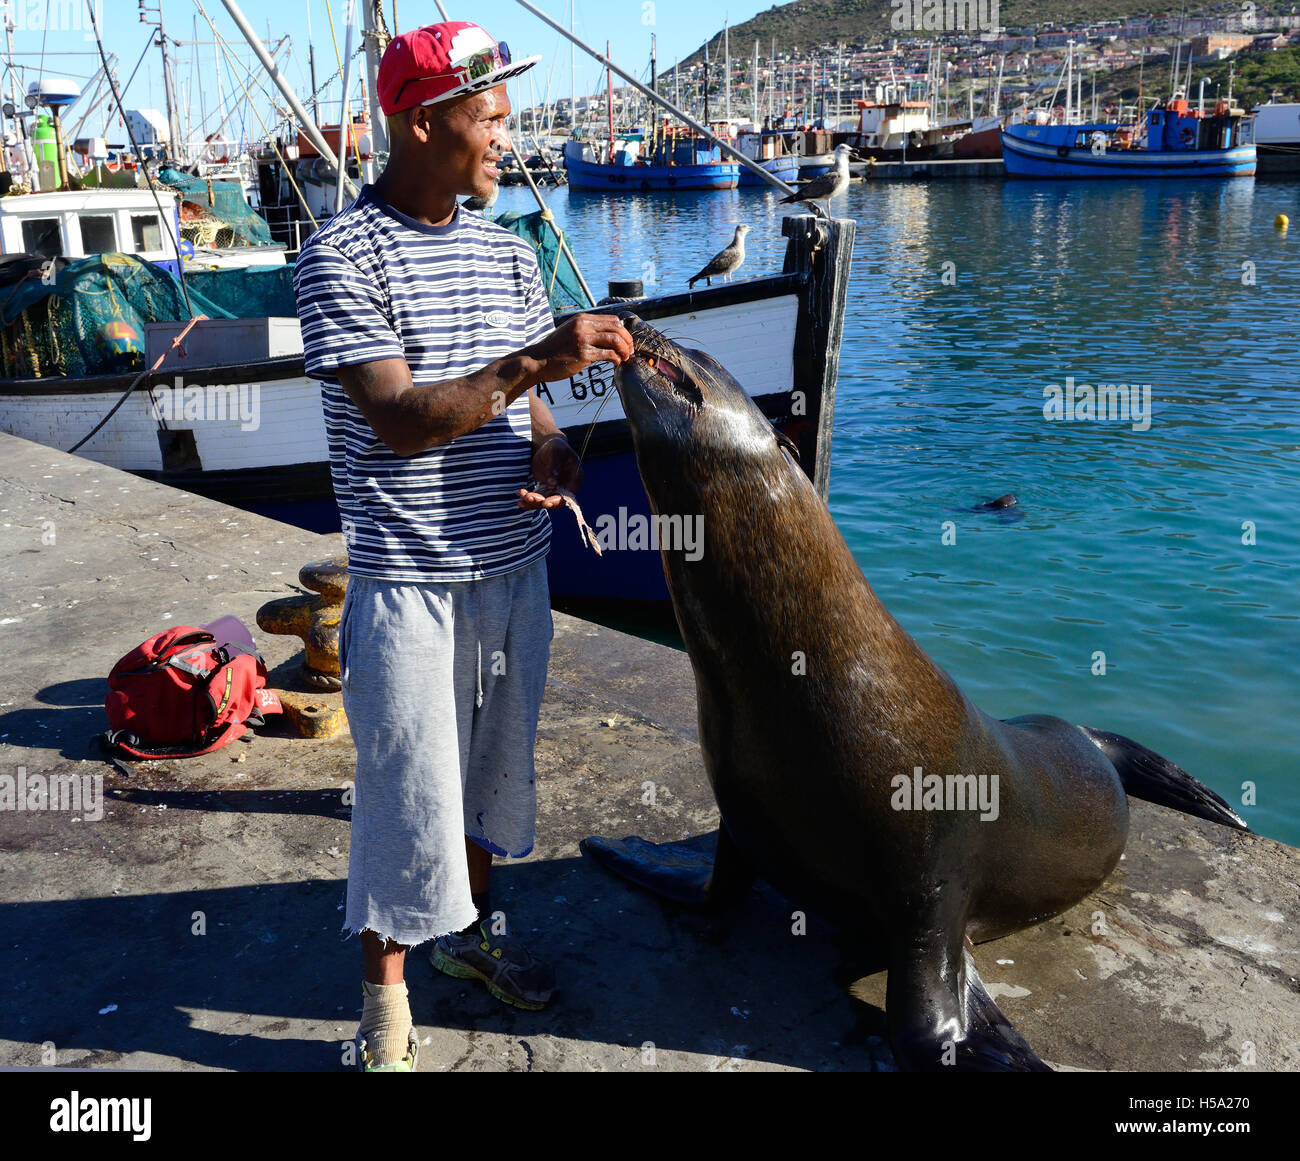 Man  commonly known as the 'seal man' of hout bay feeding seal with fish  as a tourist attraction in  Hout - Stock Image